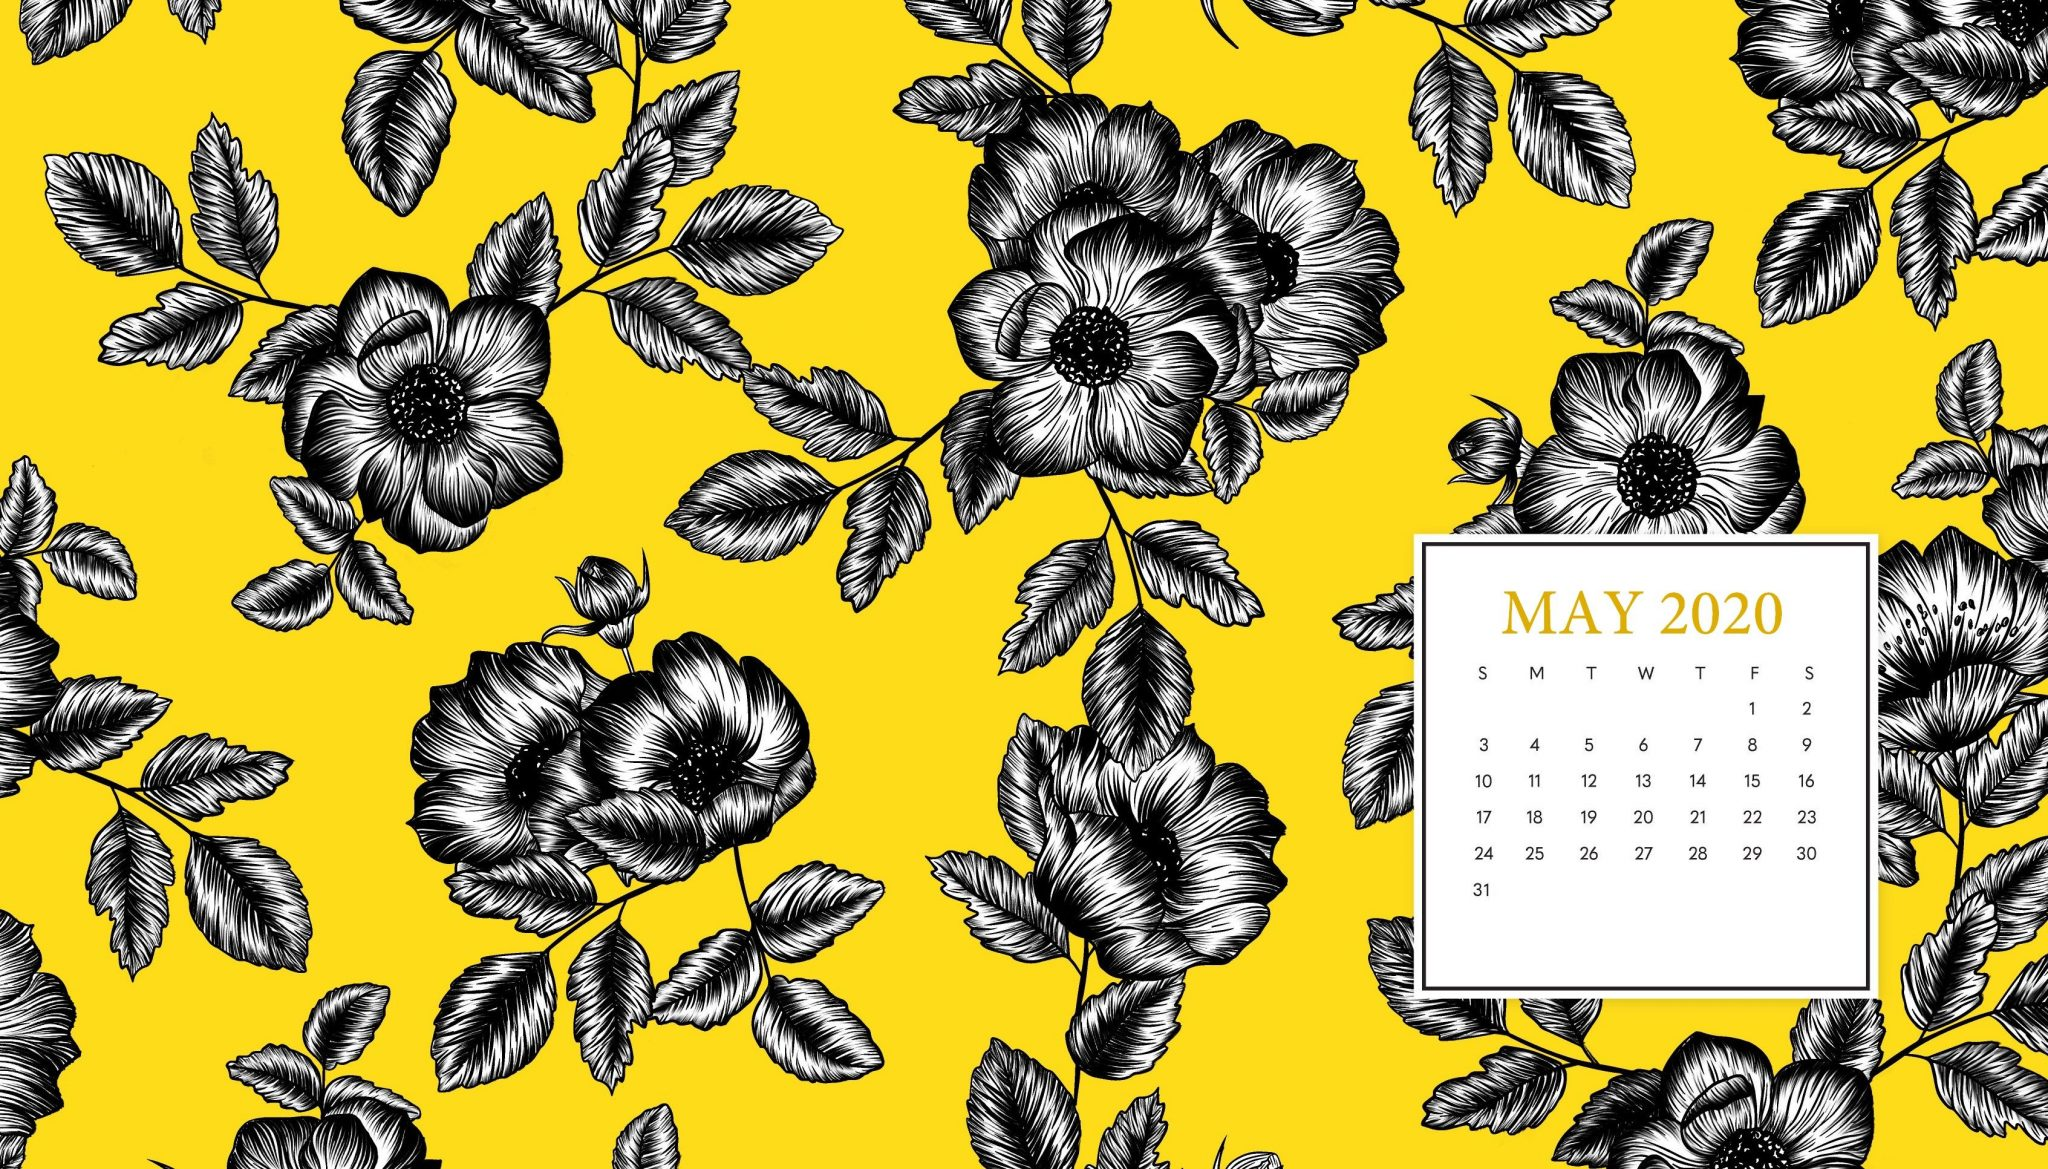 May 2020 Desktop Calendar Wallpaper